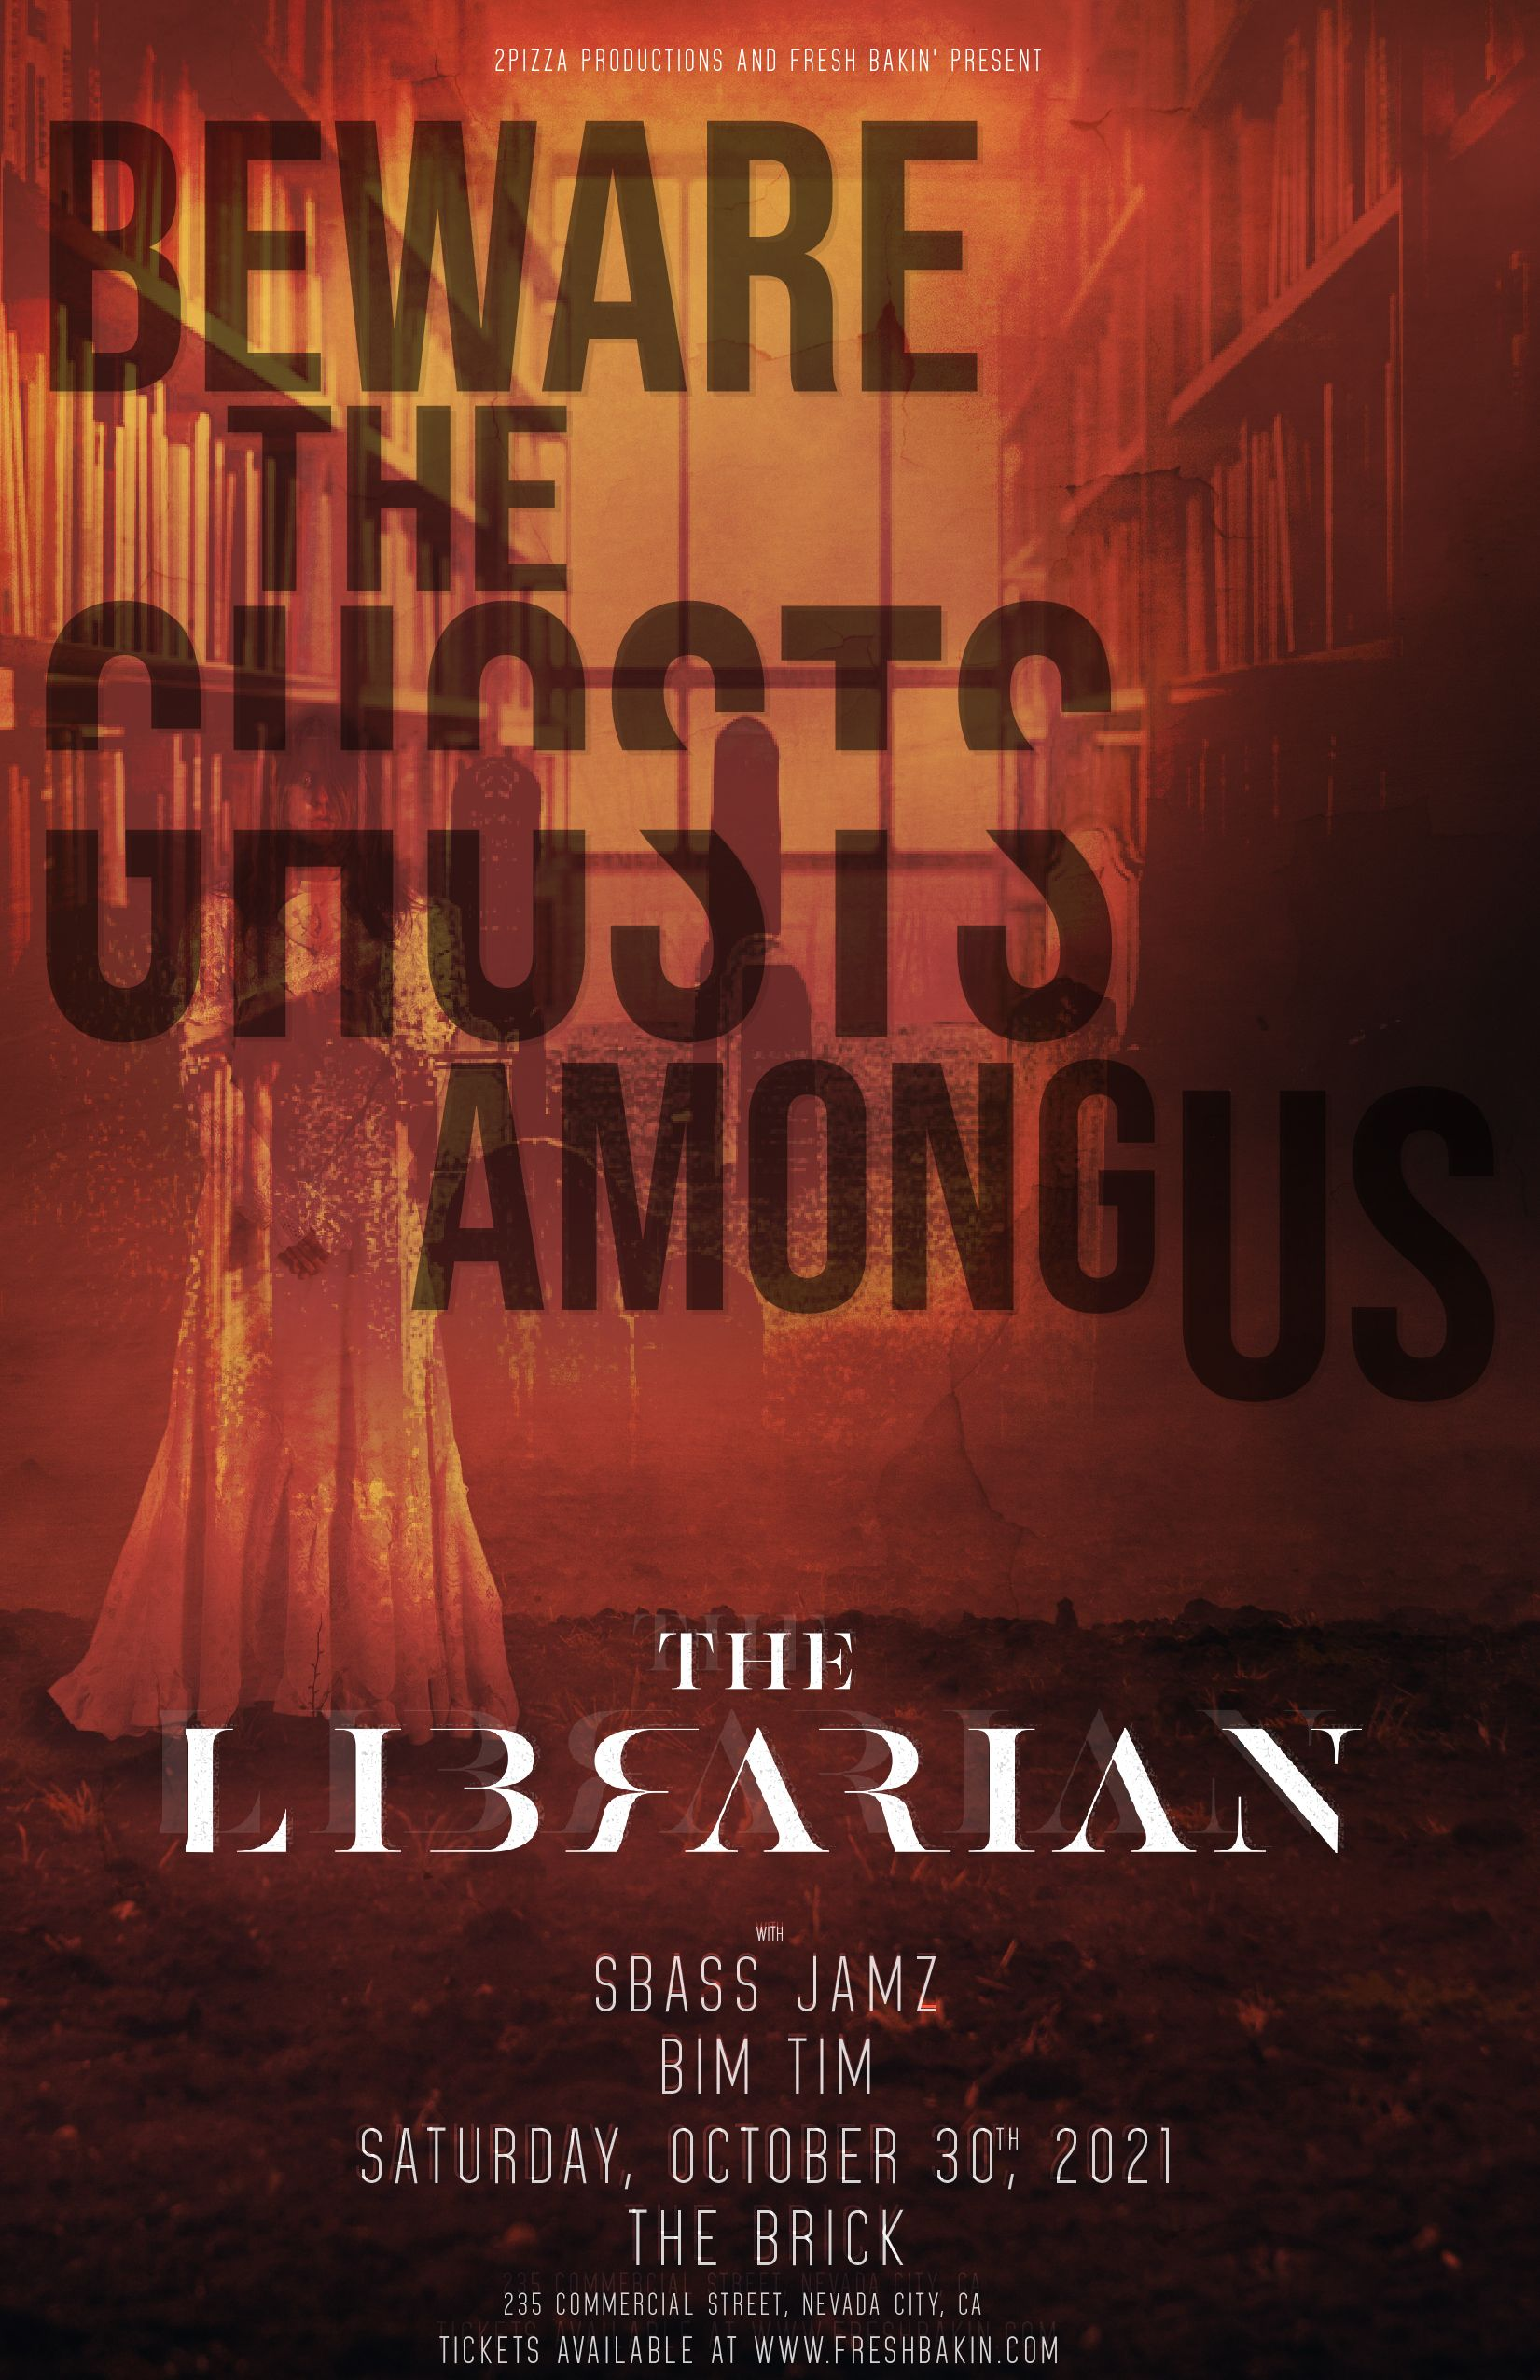 The Librarian in Nevada City at The Brick October 30th, 2021